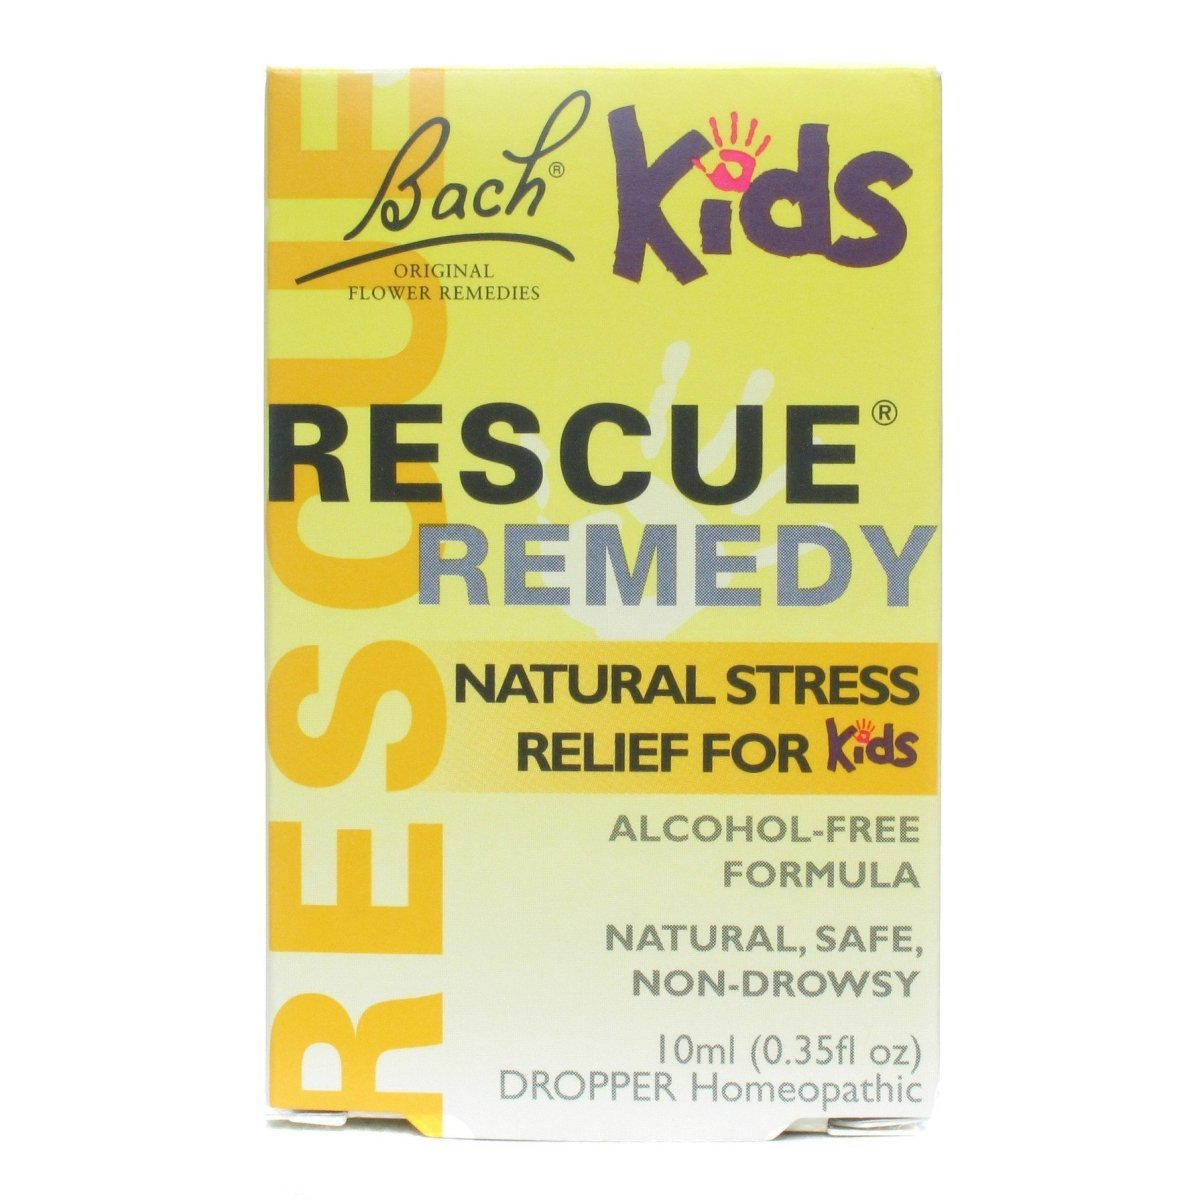 Rescue Remedy - Natural Stress Relief for Kids - Homeopathic - 10ml